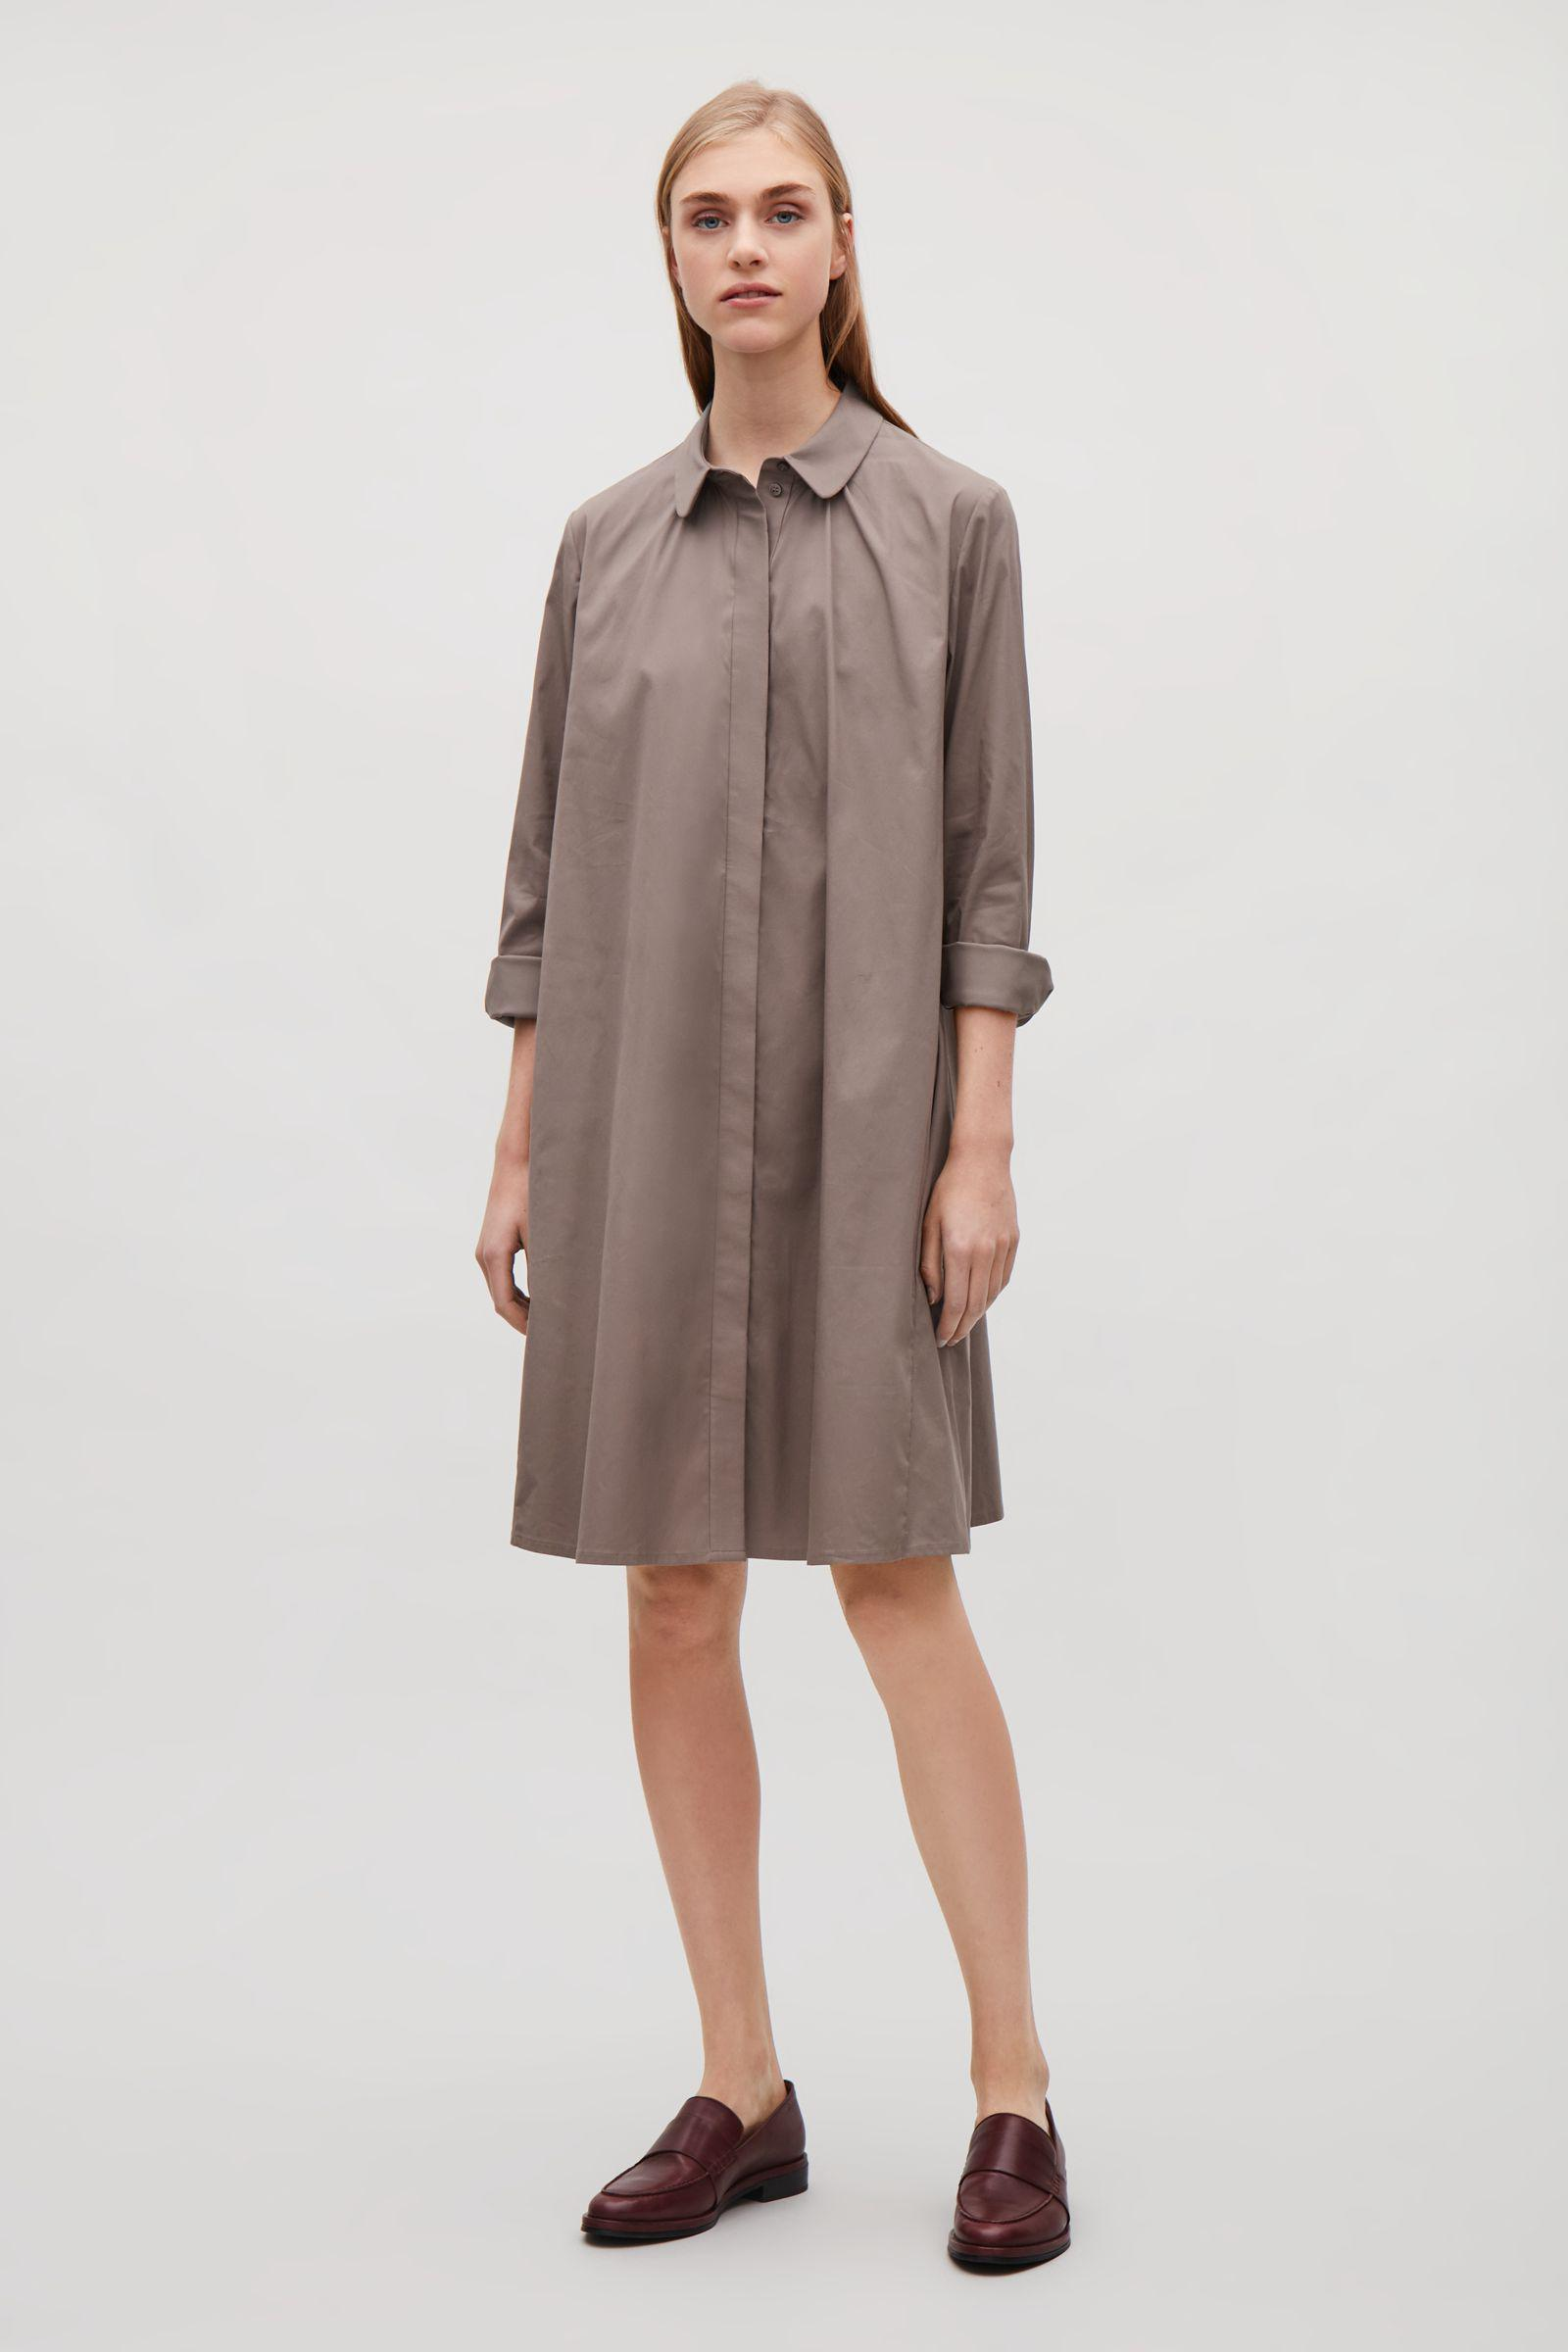 9c0fcba42cb4 COS Shirt Dress With Gathering Detail in Brown - Lyst